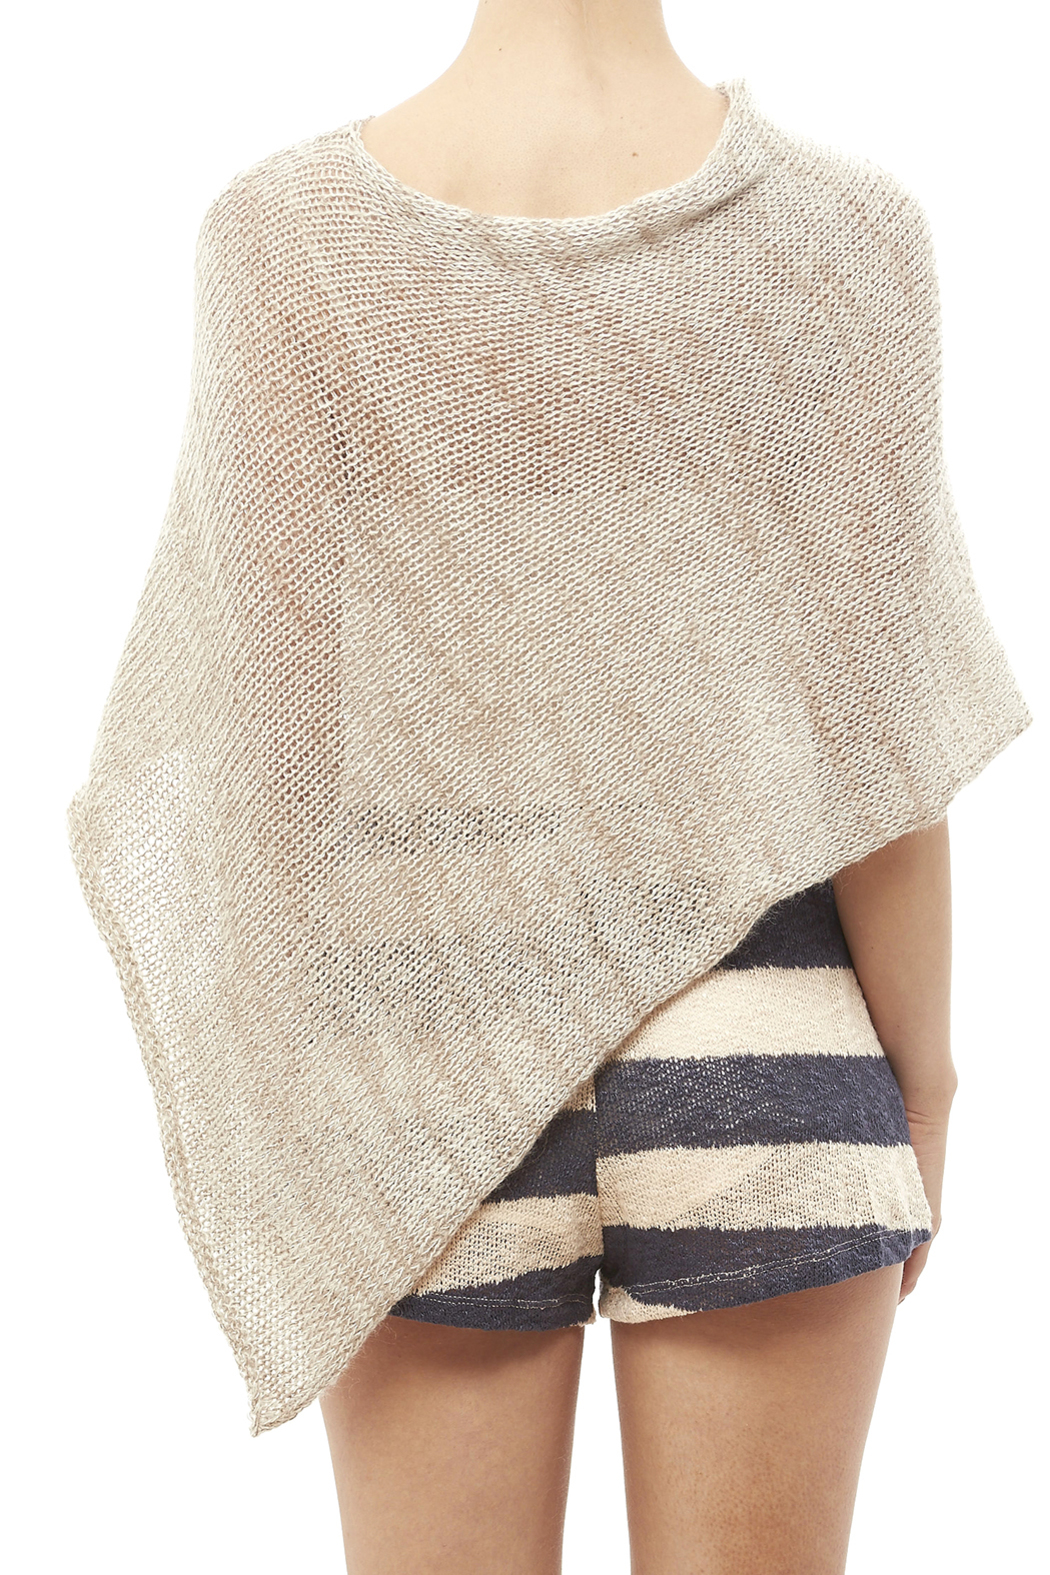 DC KNITS Mohair Blends Poncho - Back Cropped Image